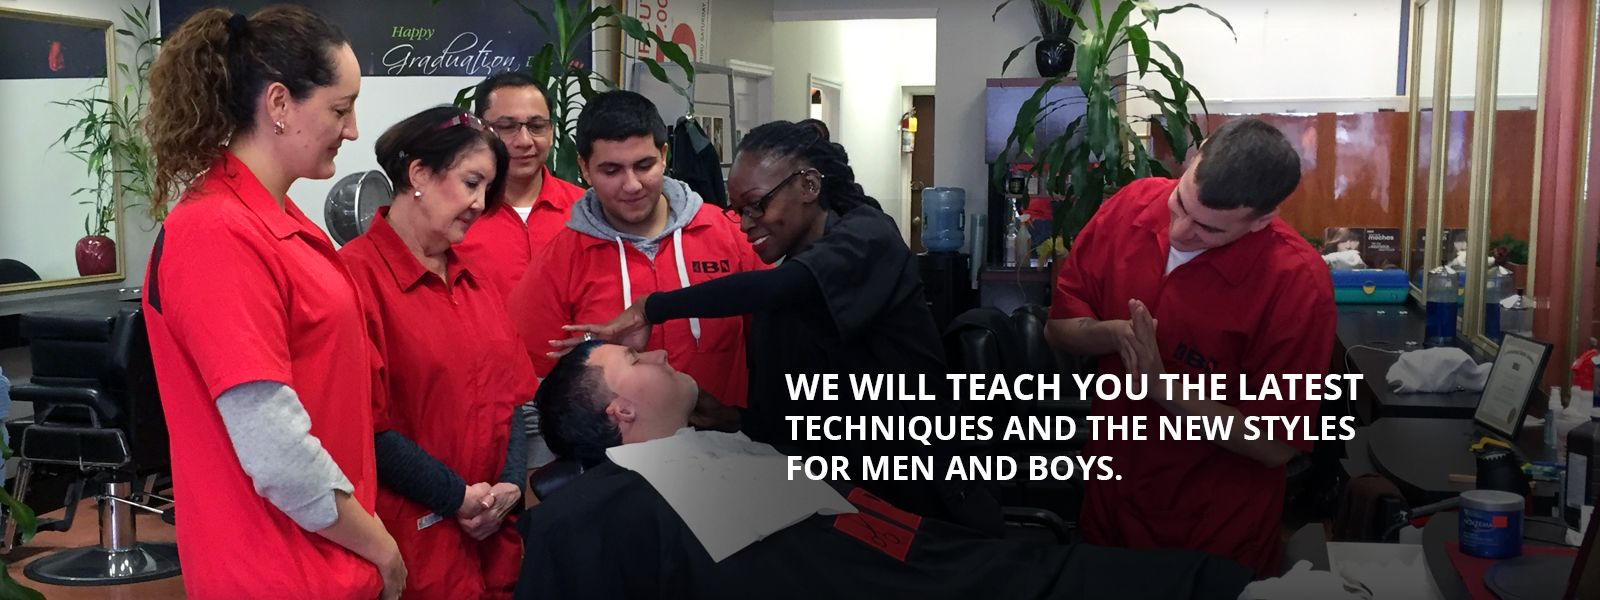 Have training in barbering from the certified barbering